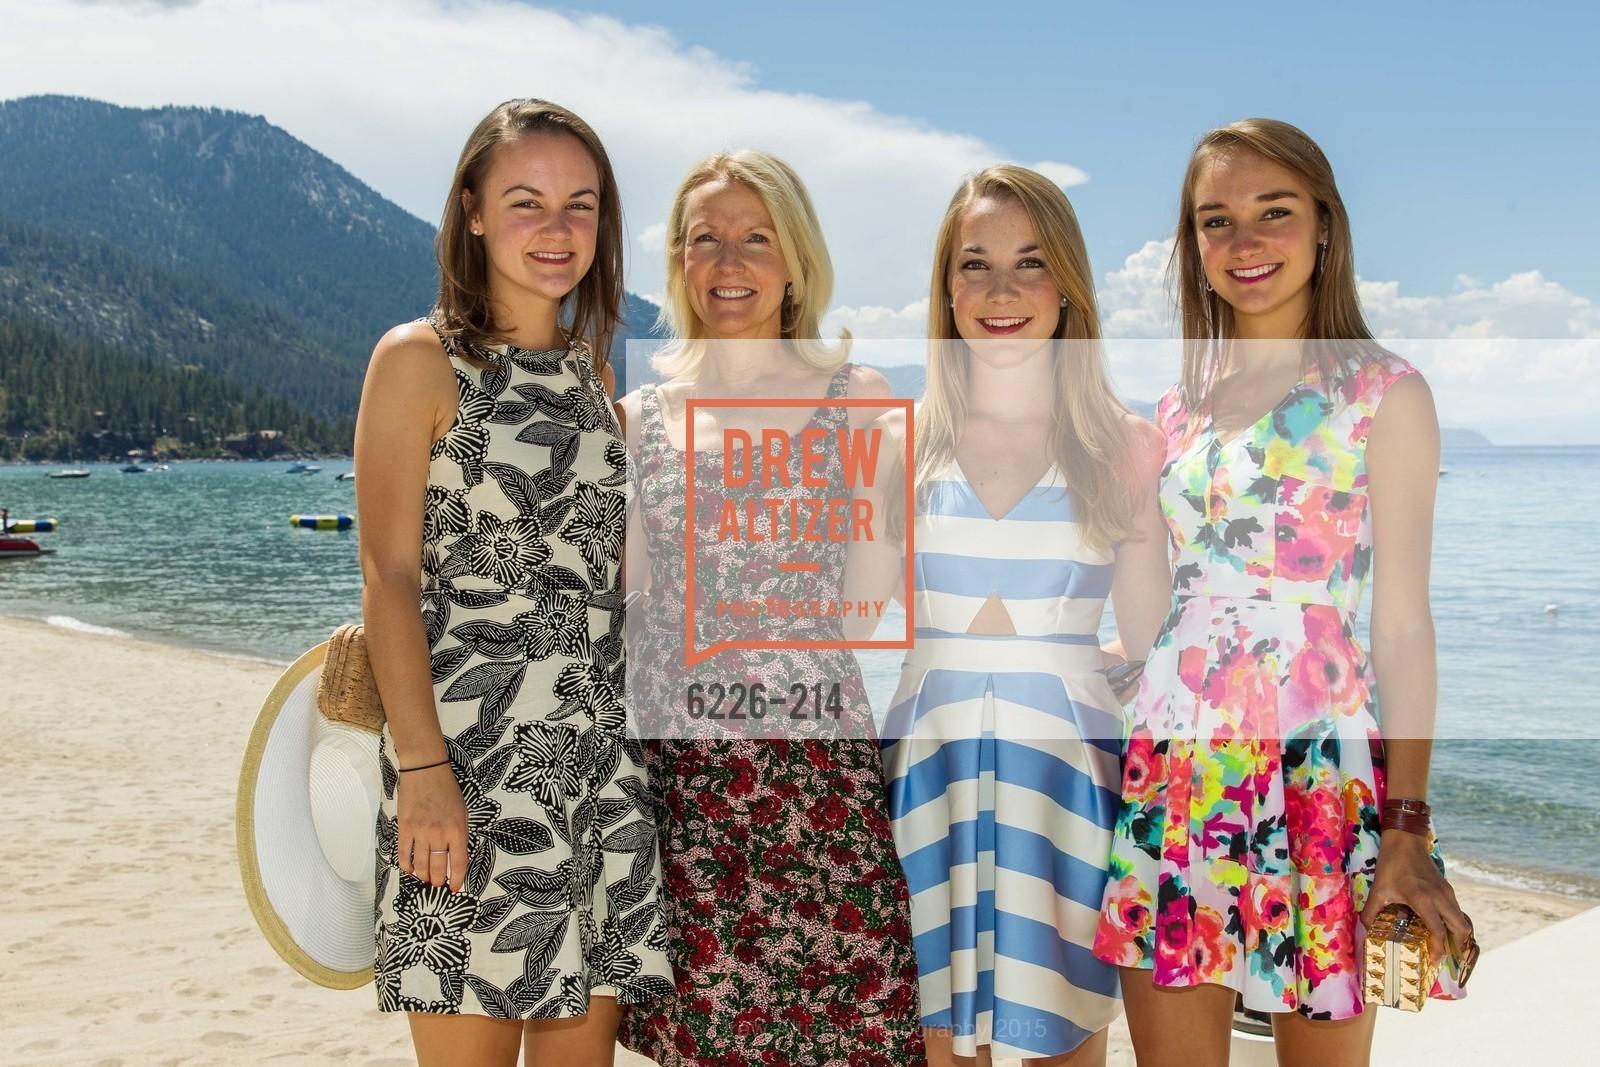 Gabrielle Girard, Ann Girard, Renee Girard, Virginia Girard, Saks Fifth Avenue and The League to Save Lake Tahoe Present Fashion on the Lake, Private Residence, August 1st, 2015,Drew Altizer, Drew Altizer Photography, full-service agency, private events, San Francisco photographer, photographer california